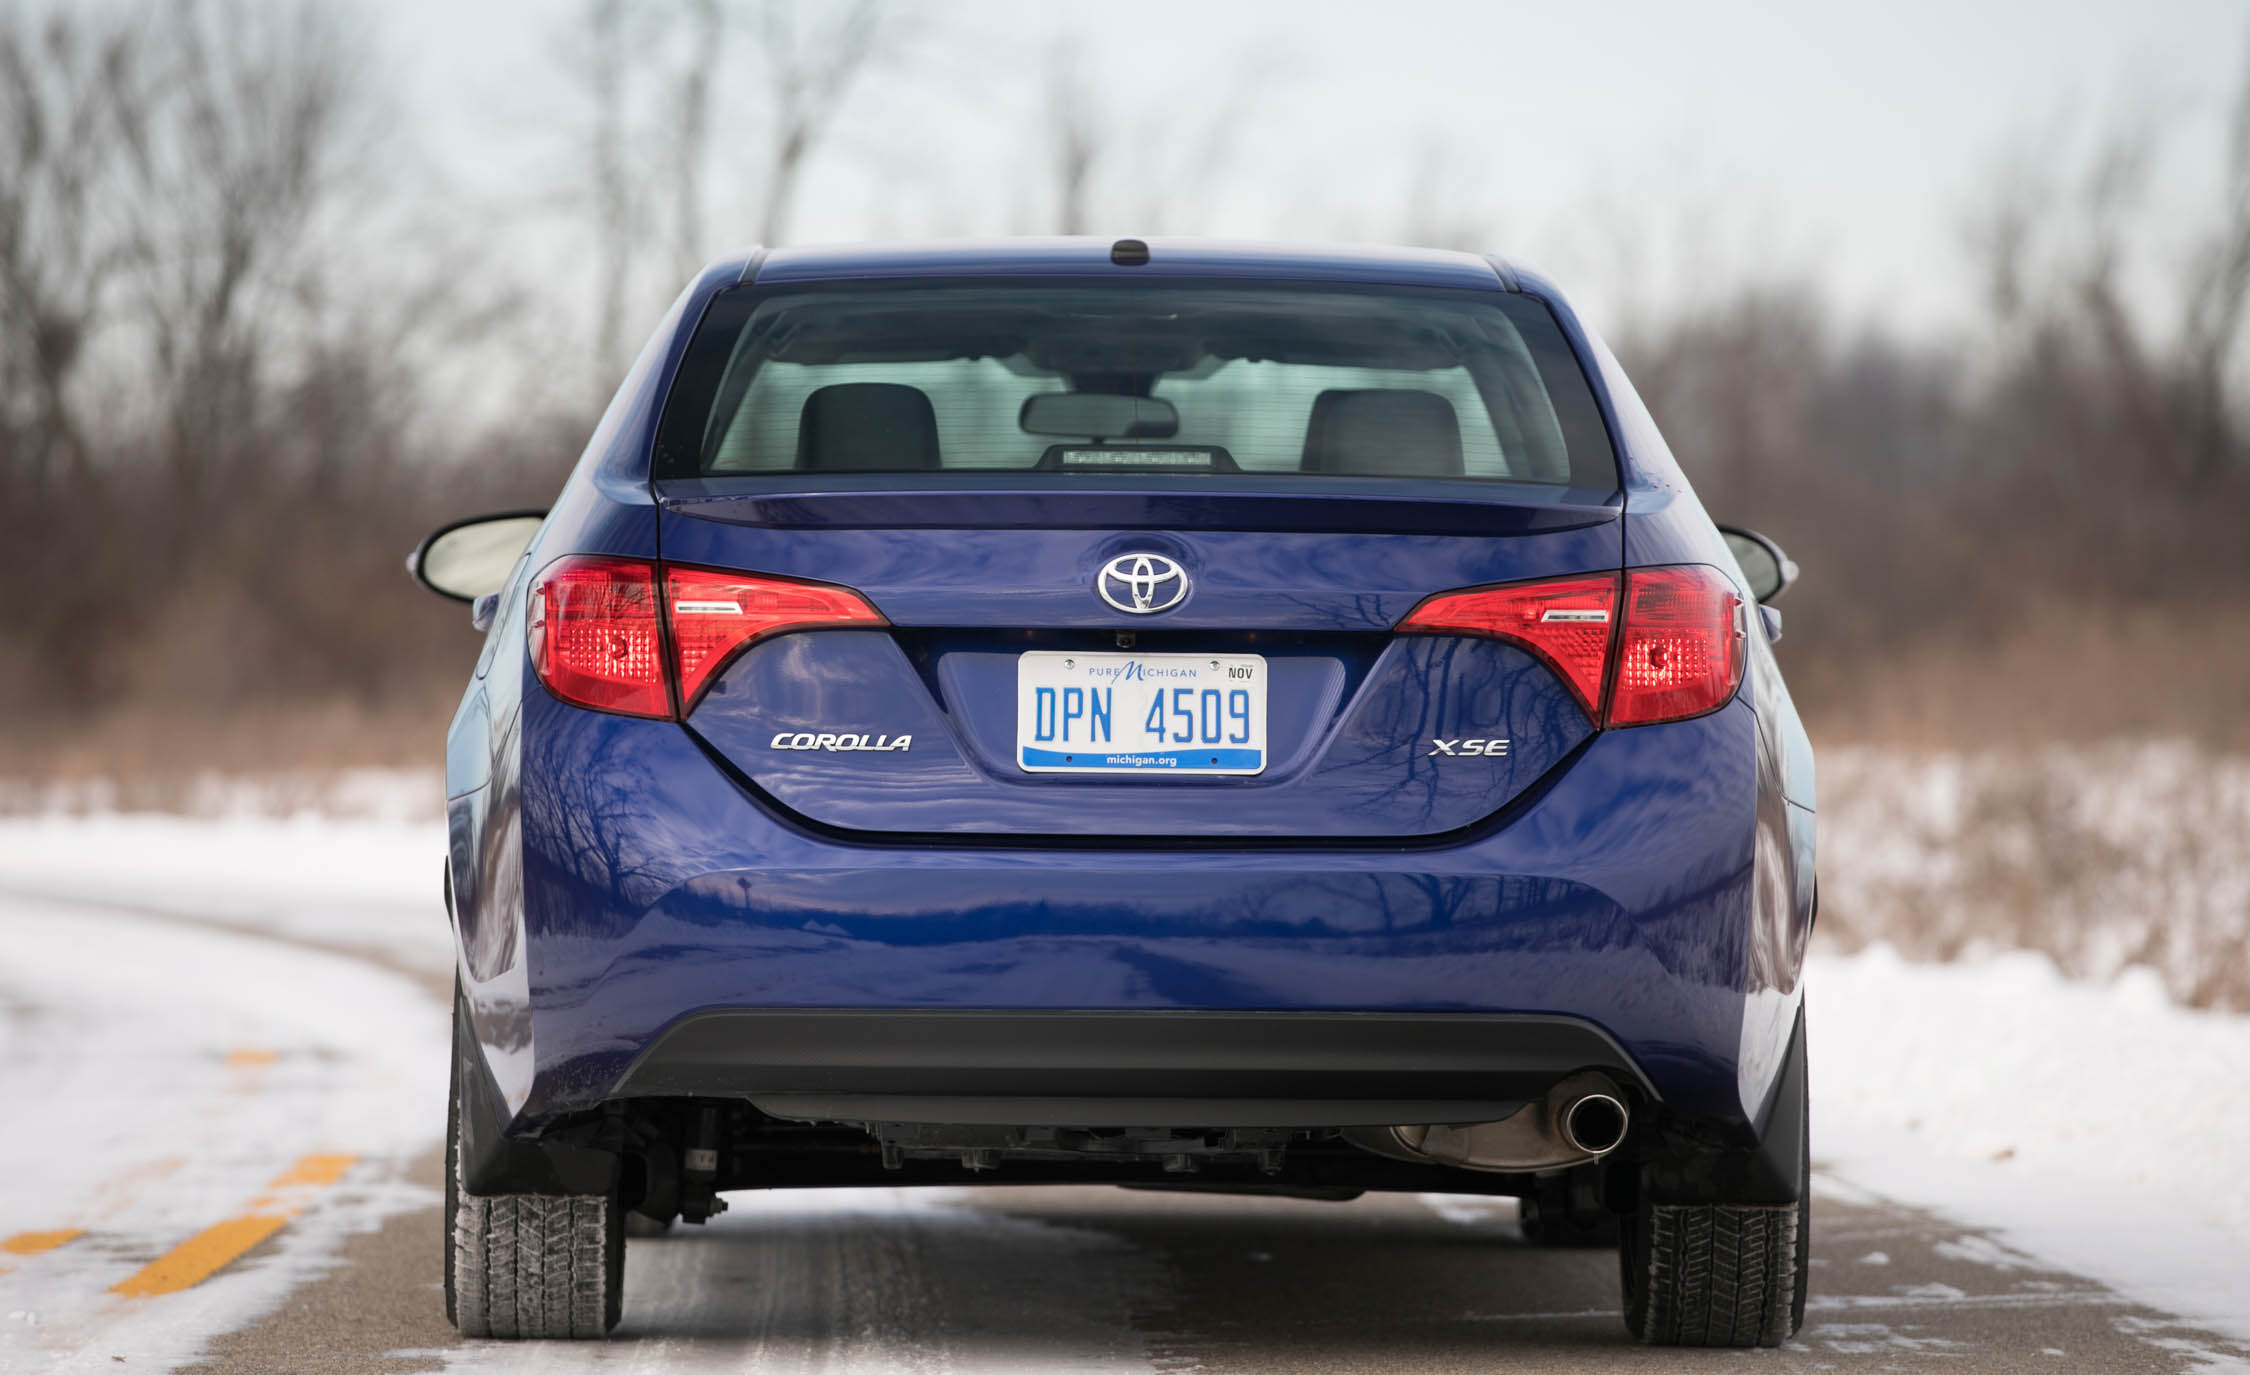 2017 Toyota Corolla XSE Exterior Rear (View 68 of 75)